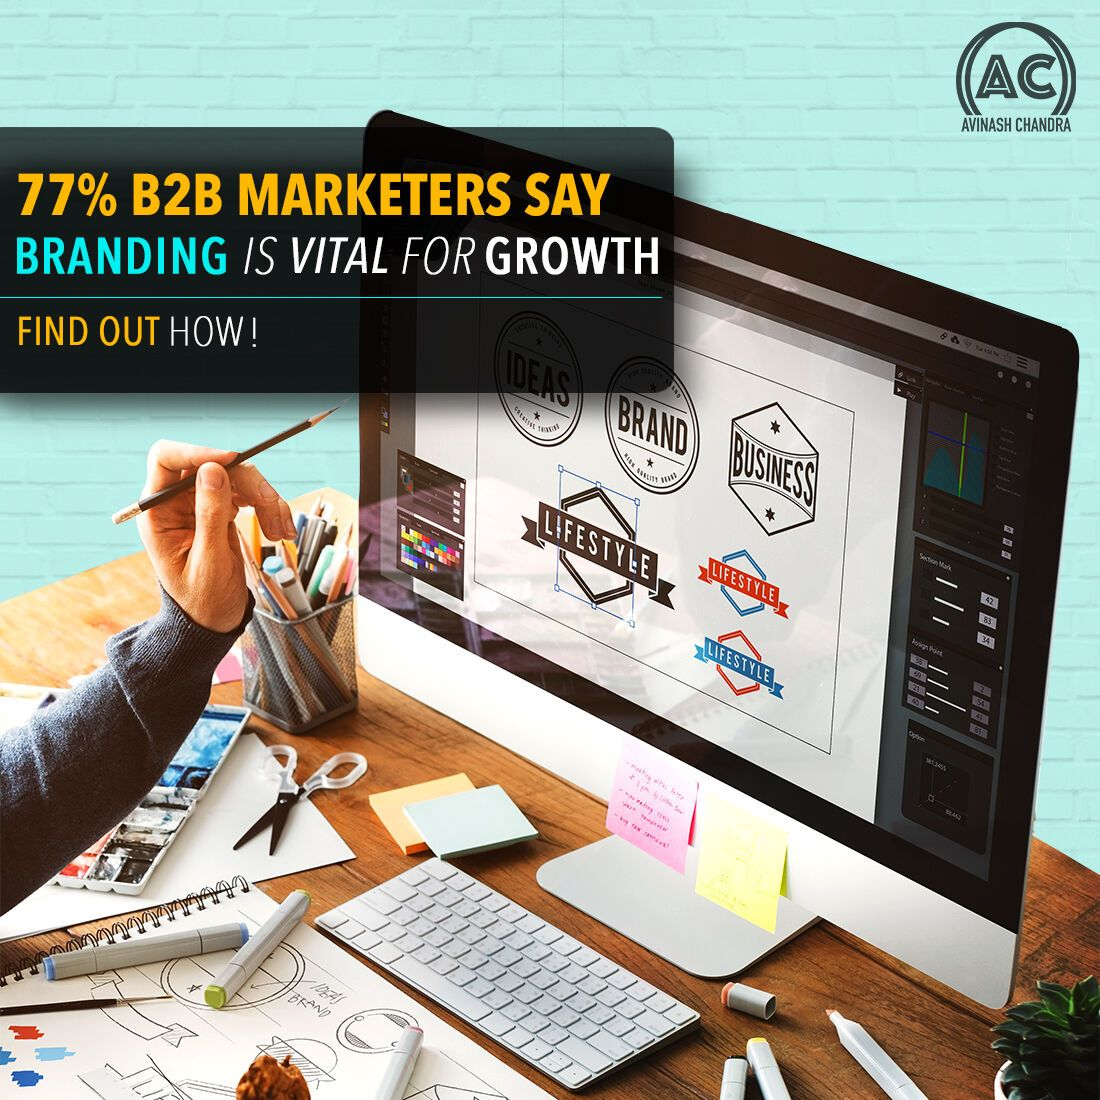 When it comes to B2B marketing, brand building is crucial